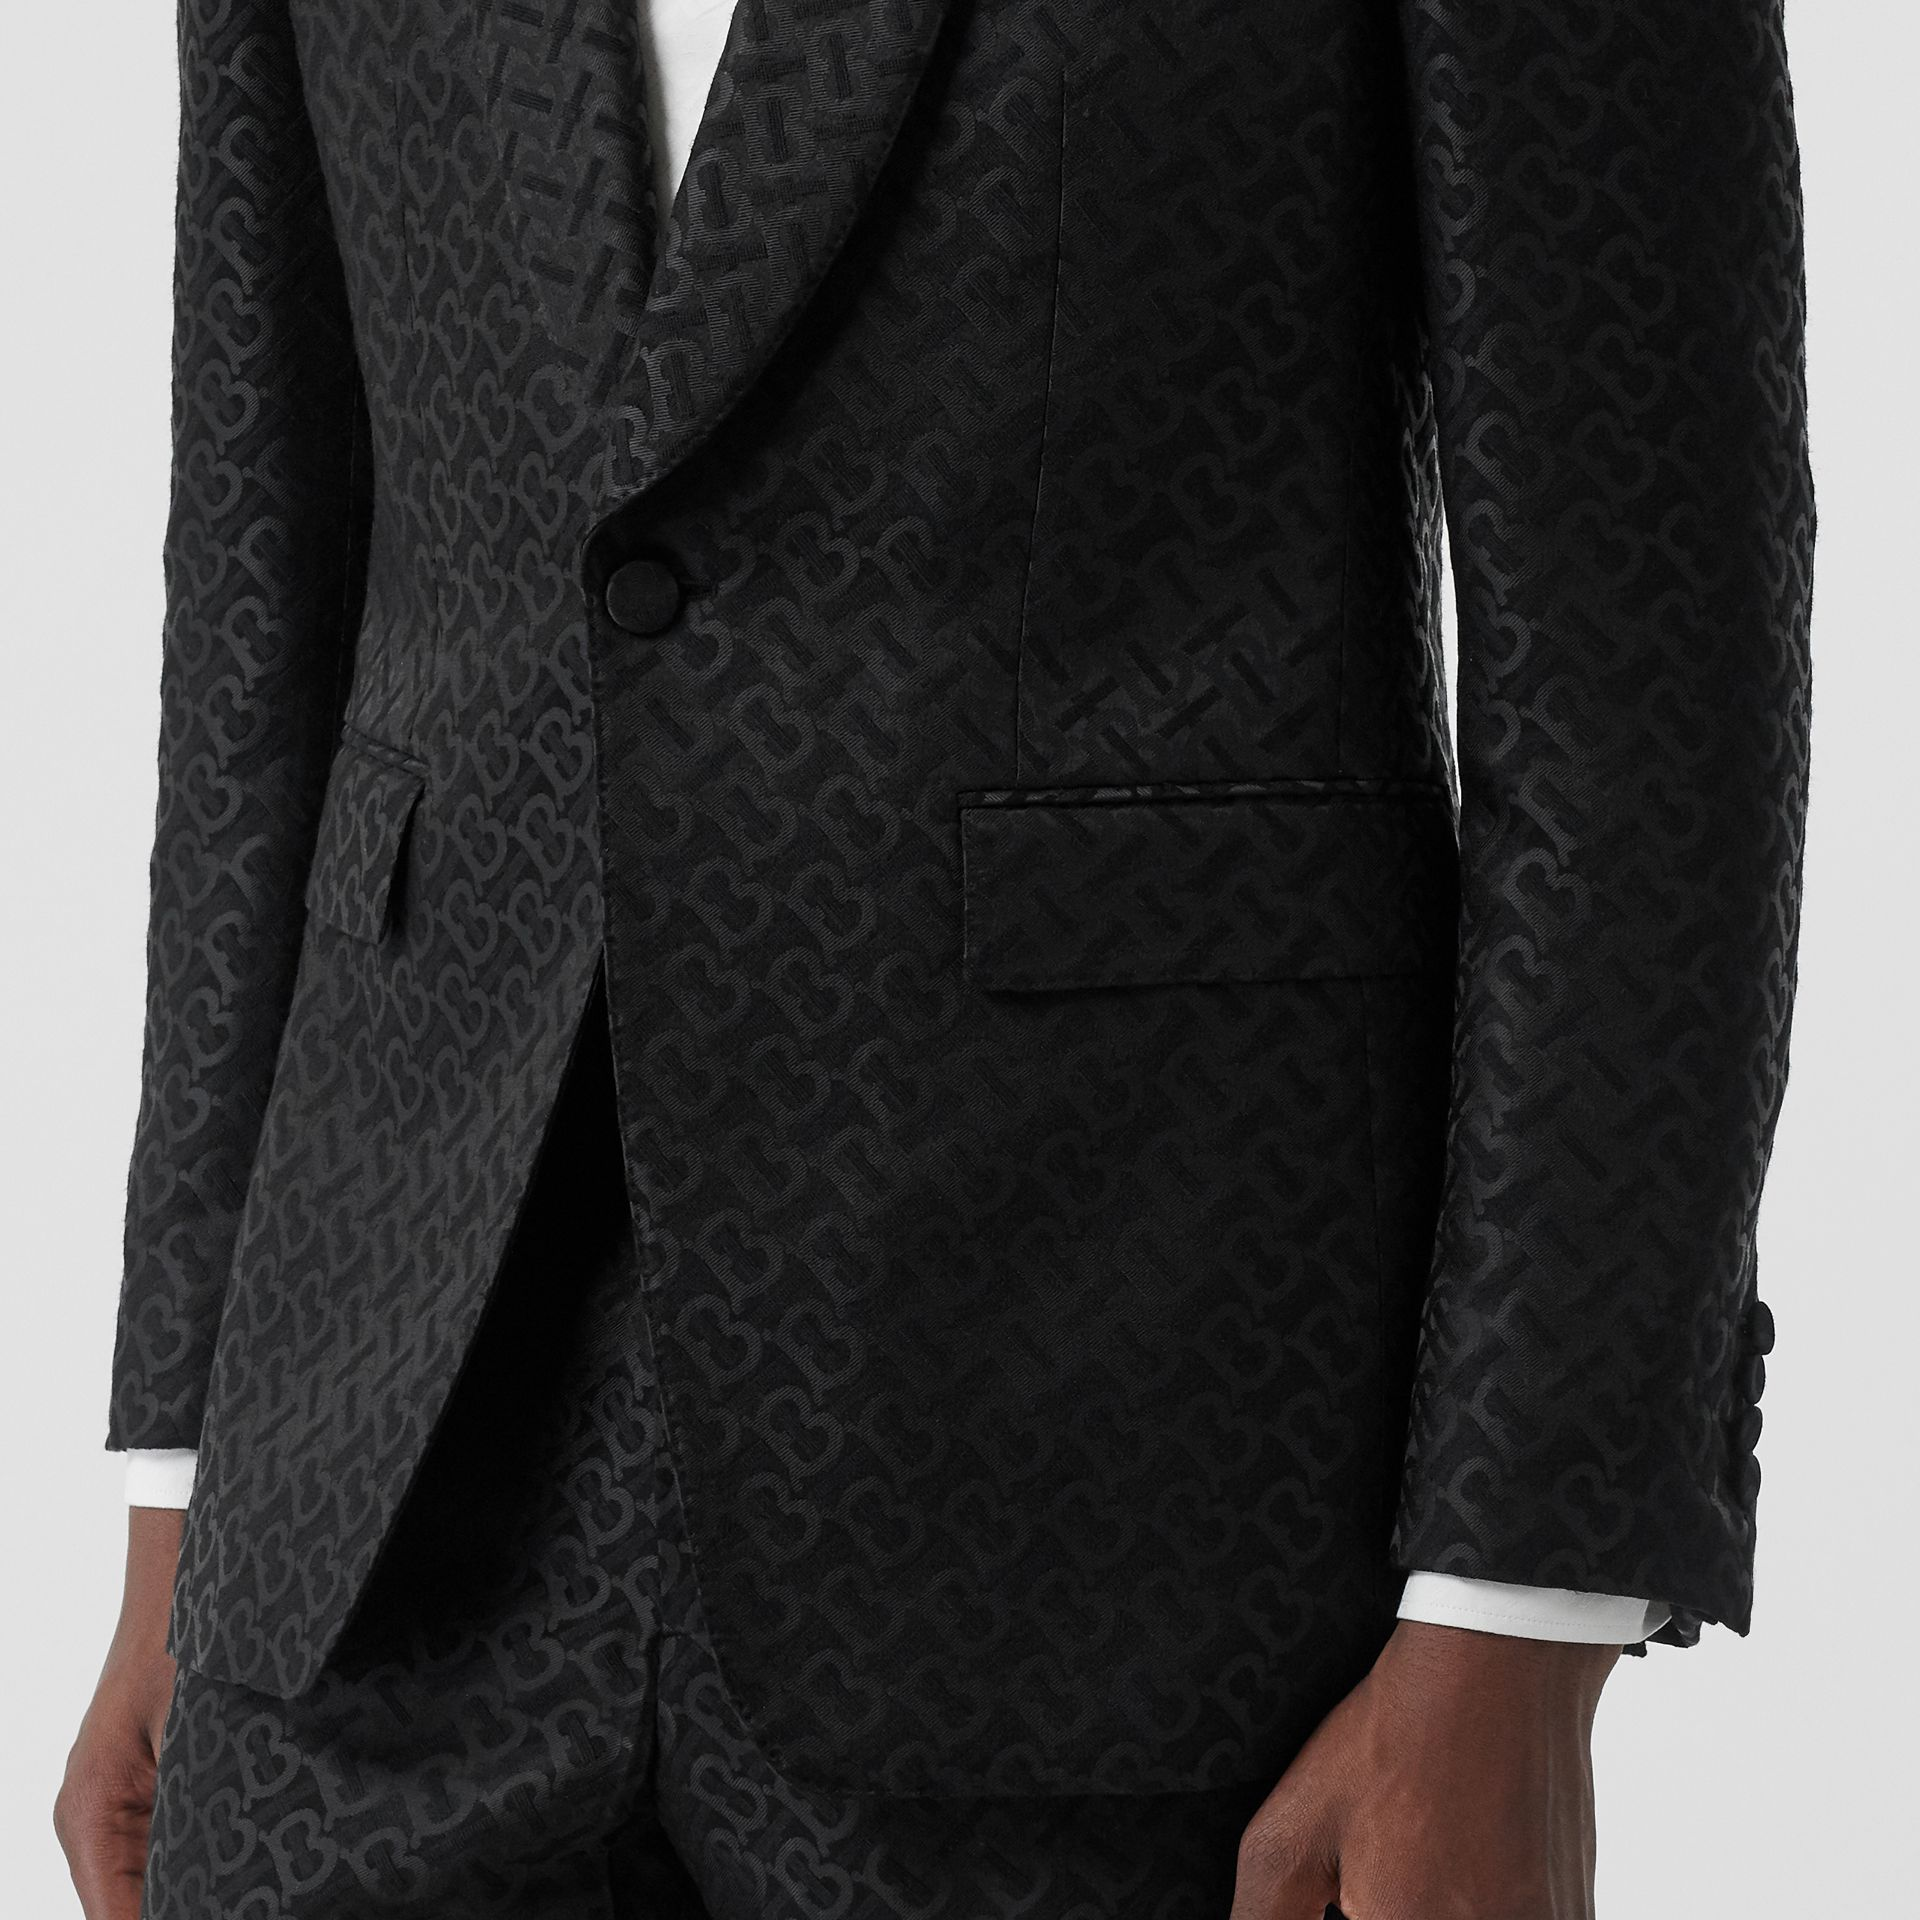 English Fit Monogram Wool Blend Jacquard Tuxedo in Black - Men | Burberry - gallery image 4